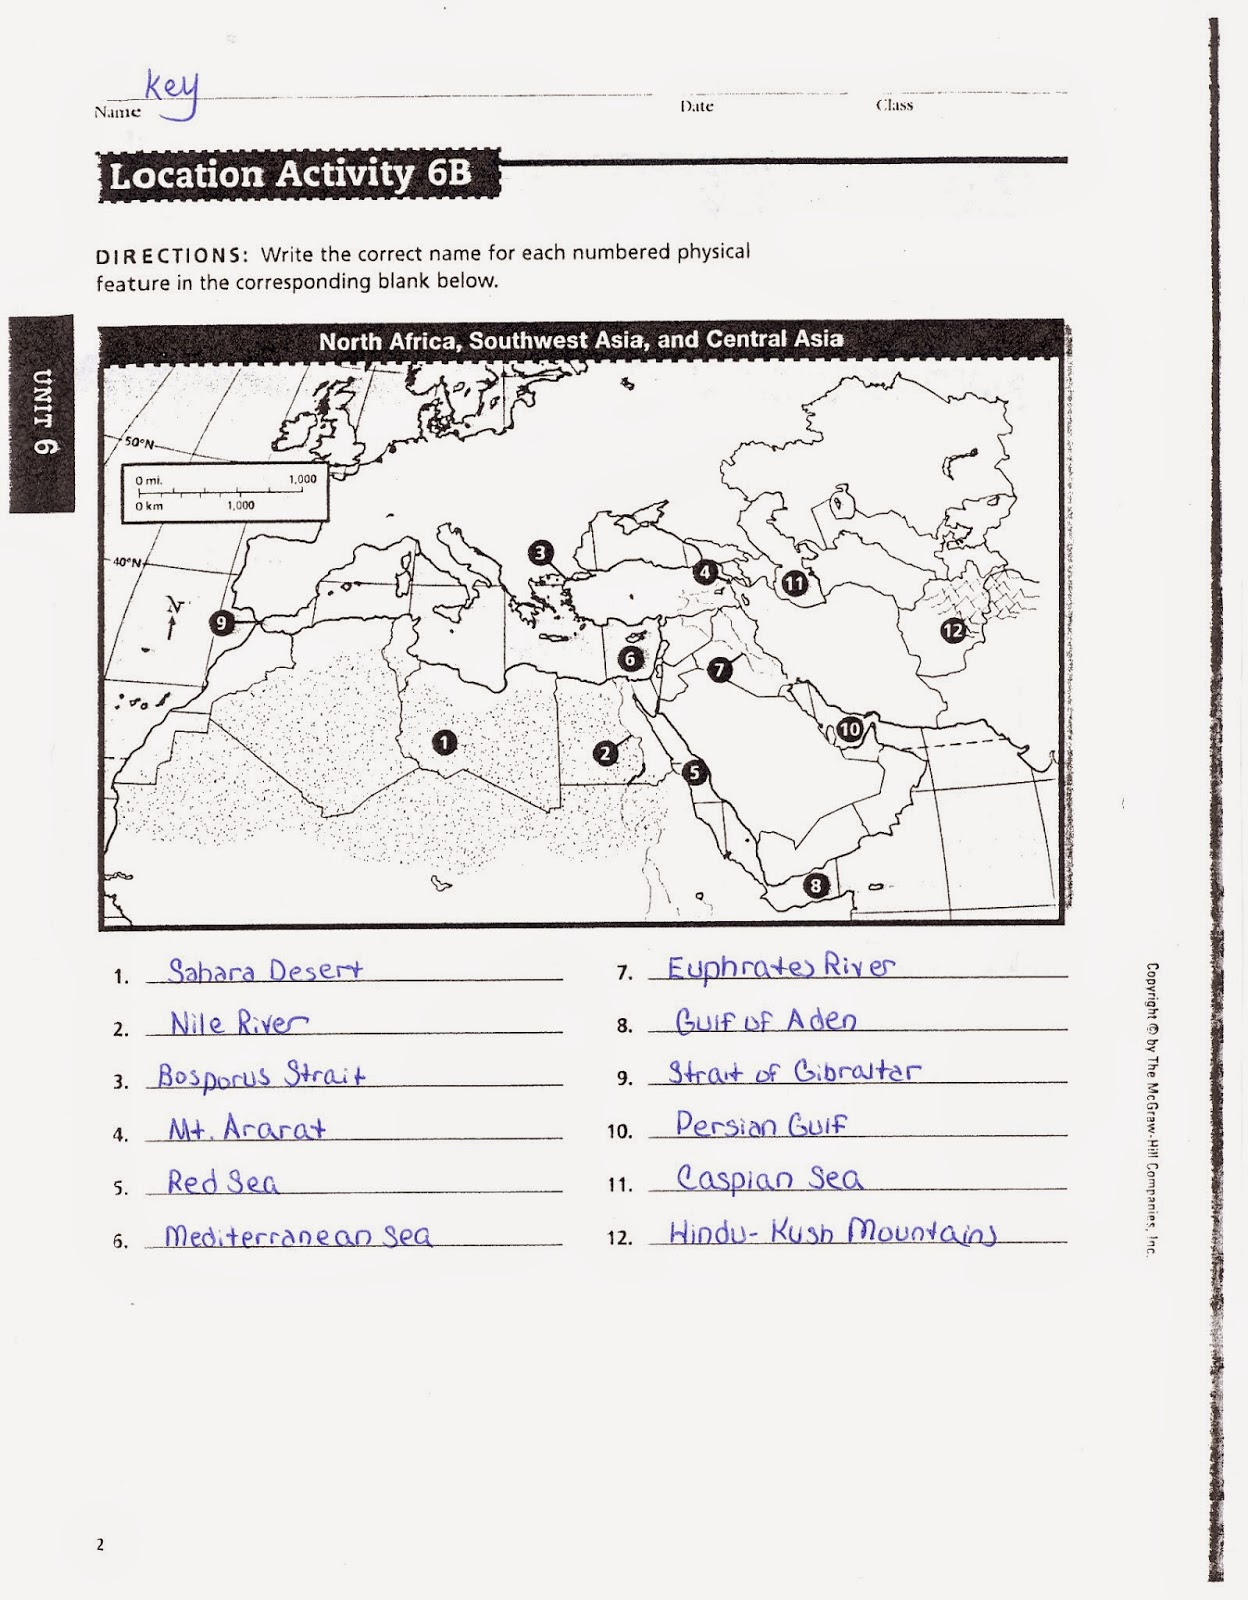 Worksheet On North Africa